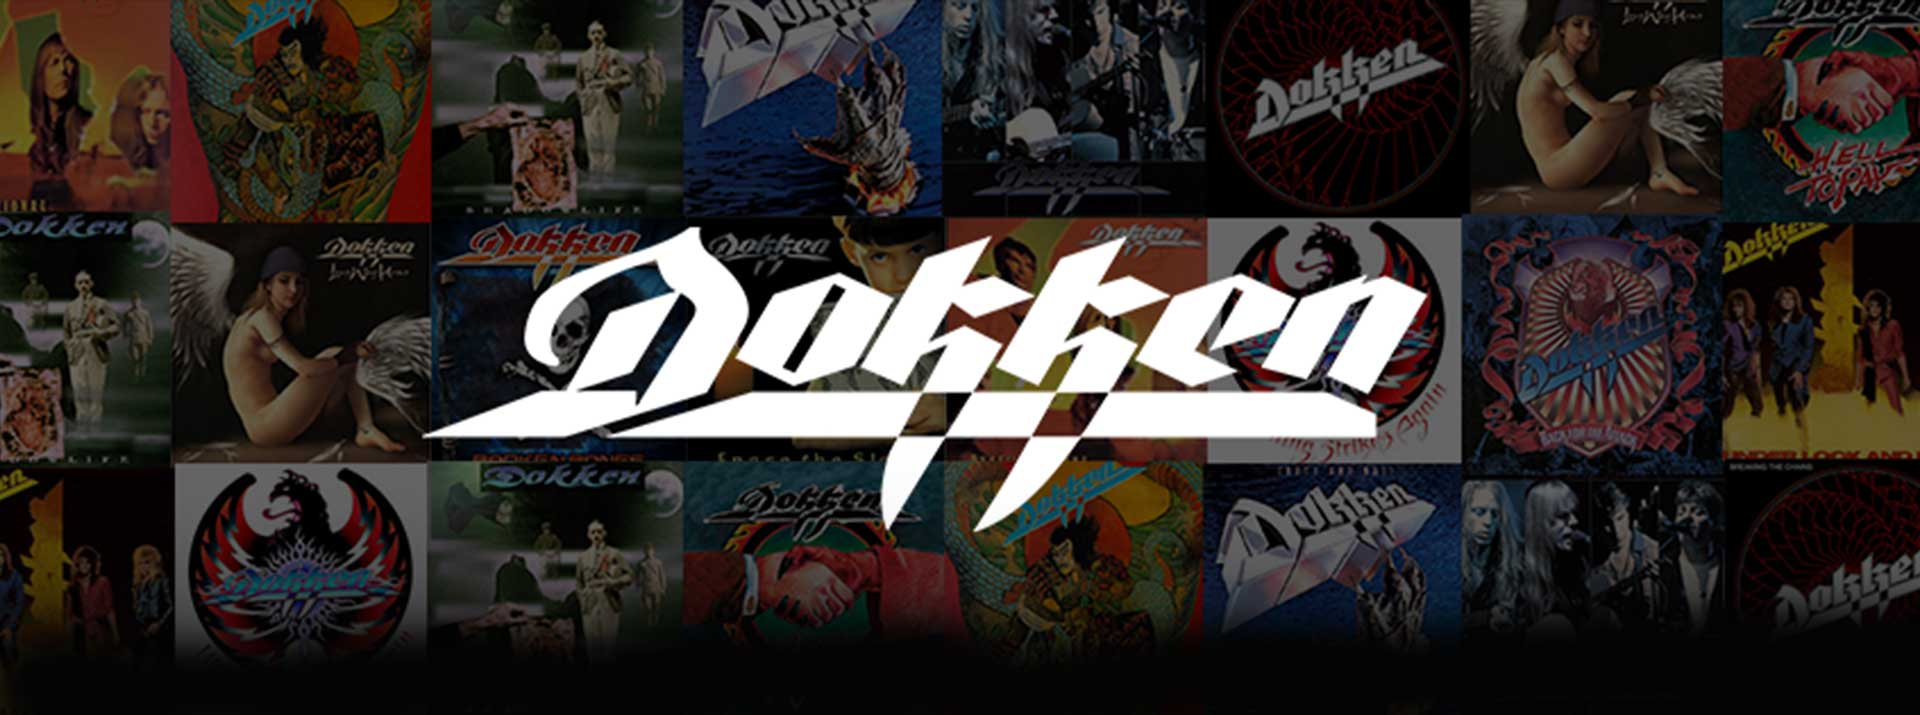 Official website for the rock band DOKKEN..